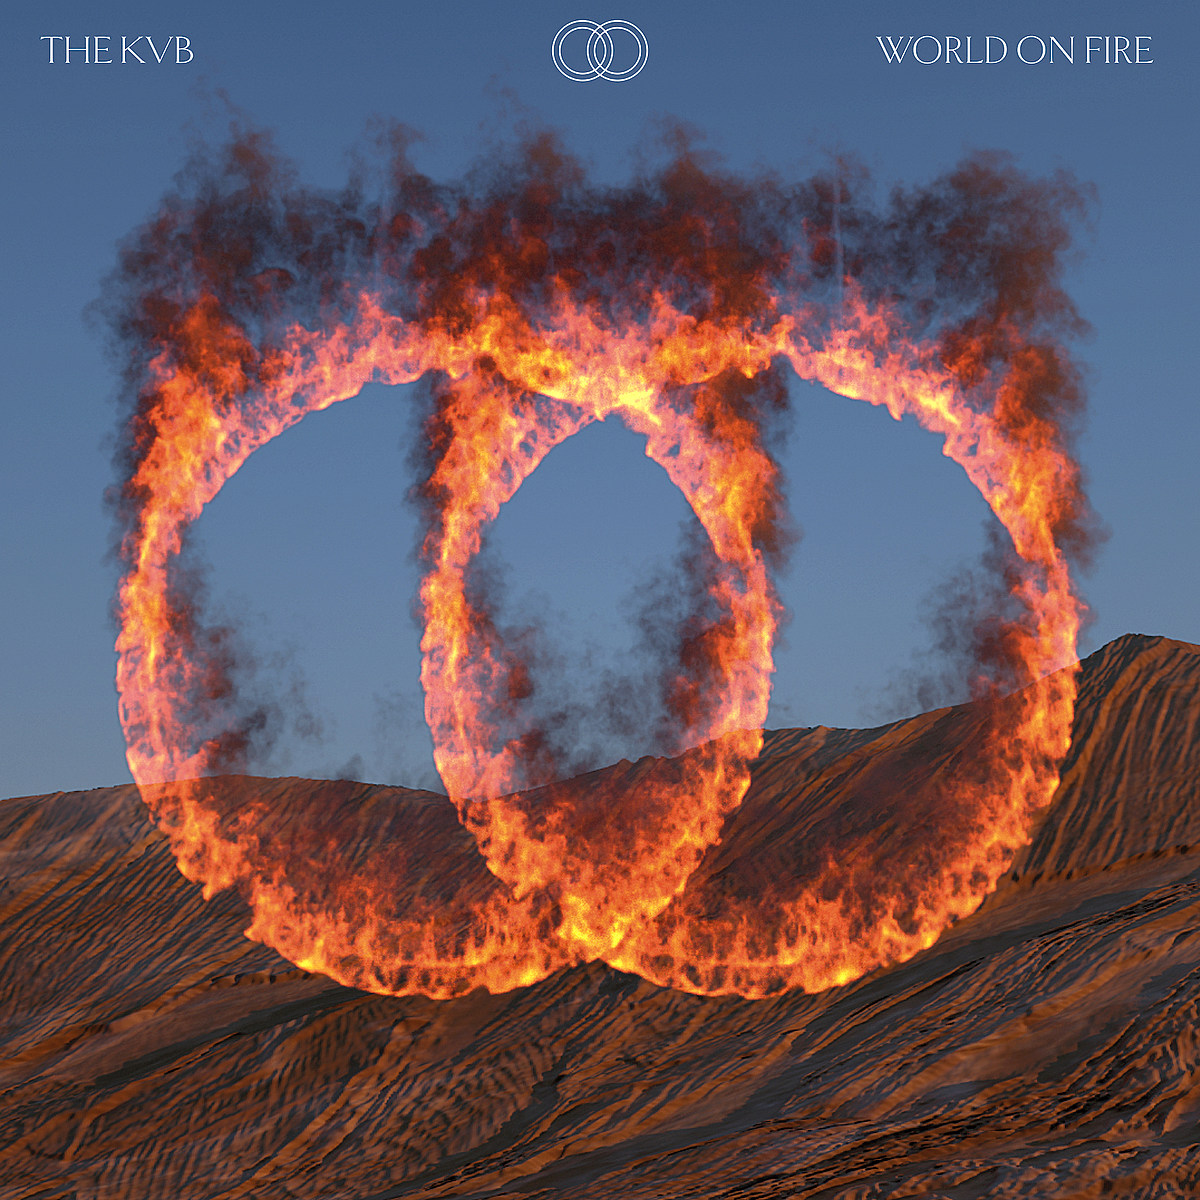 DOWNLOAD MP3: The KVB – World On Fire (Audio)